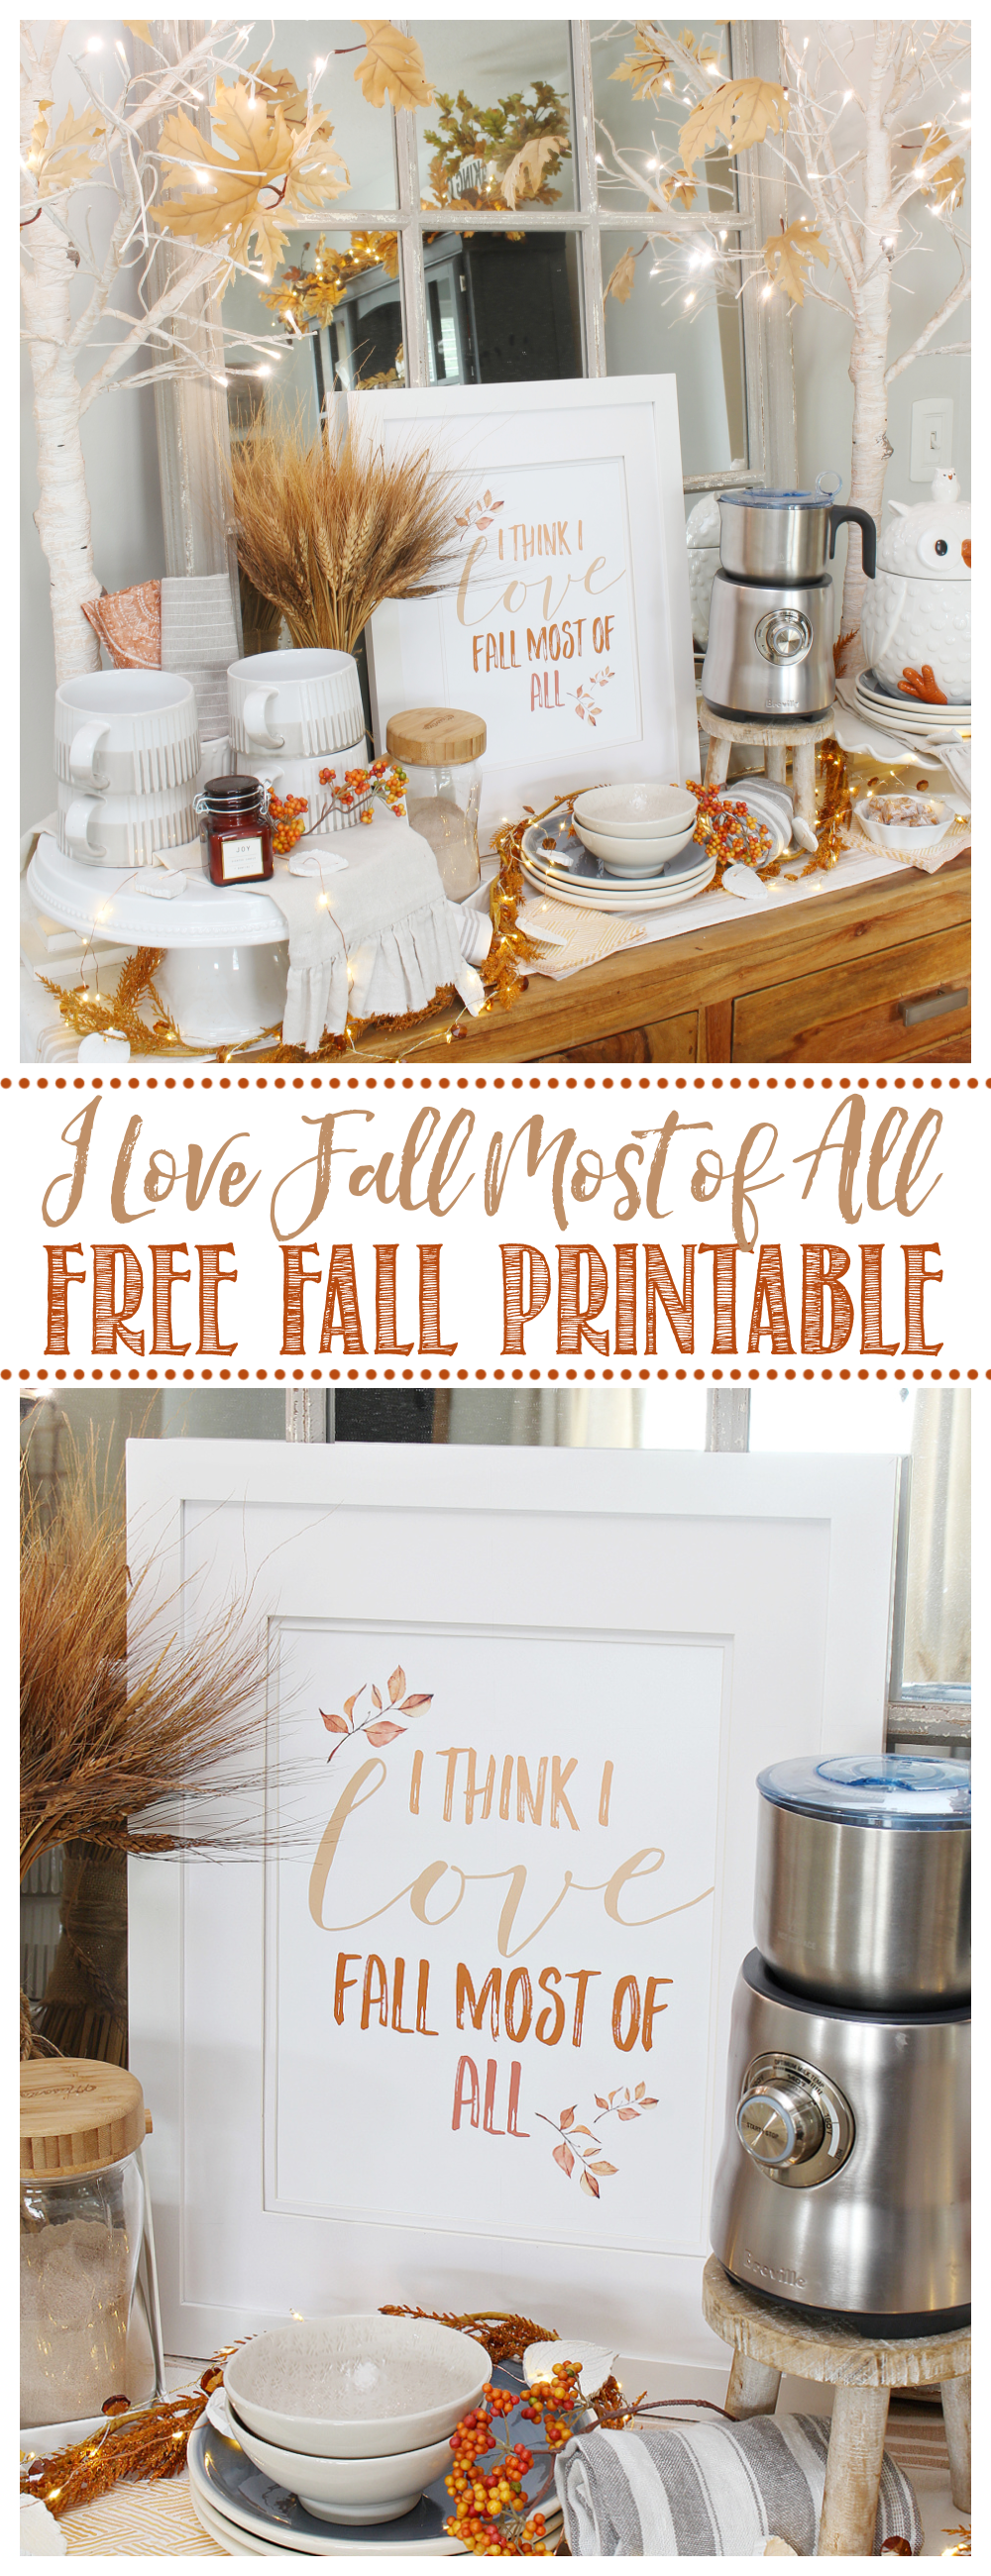 I Think I Love Fall Most of All free printable displayed on a coffee bar.